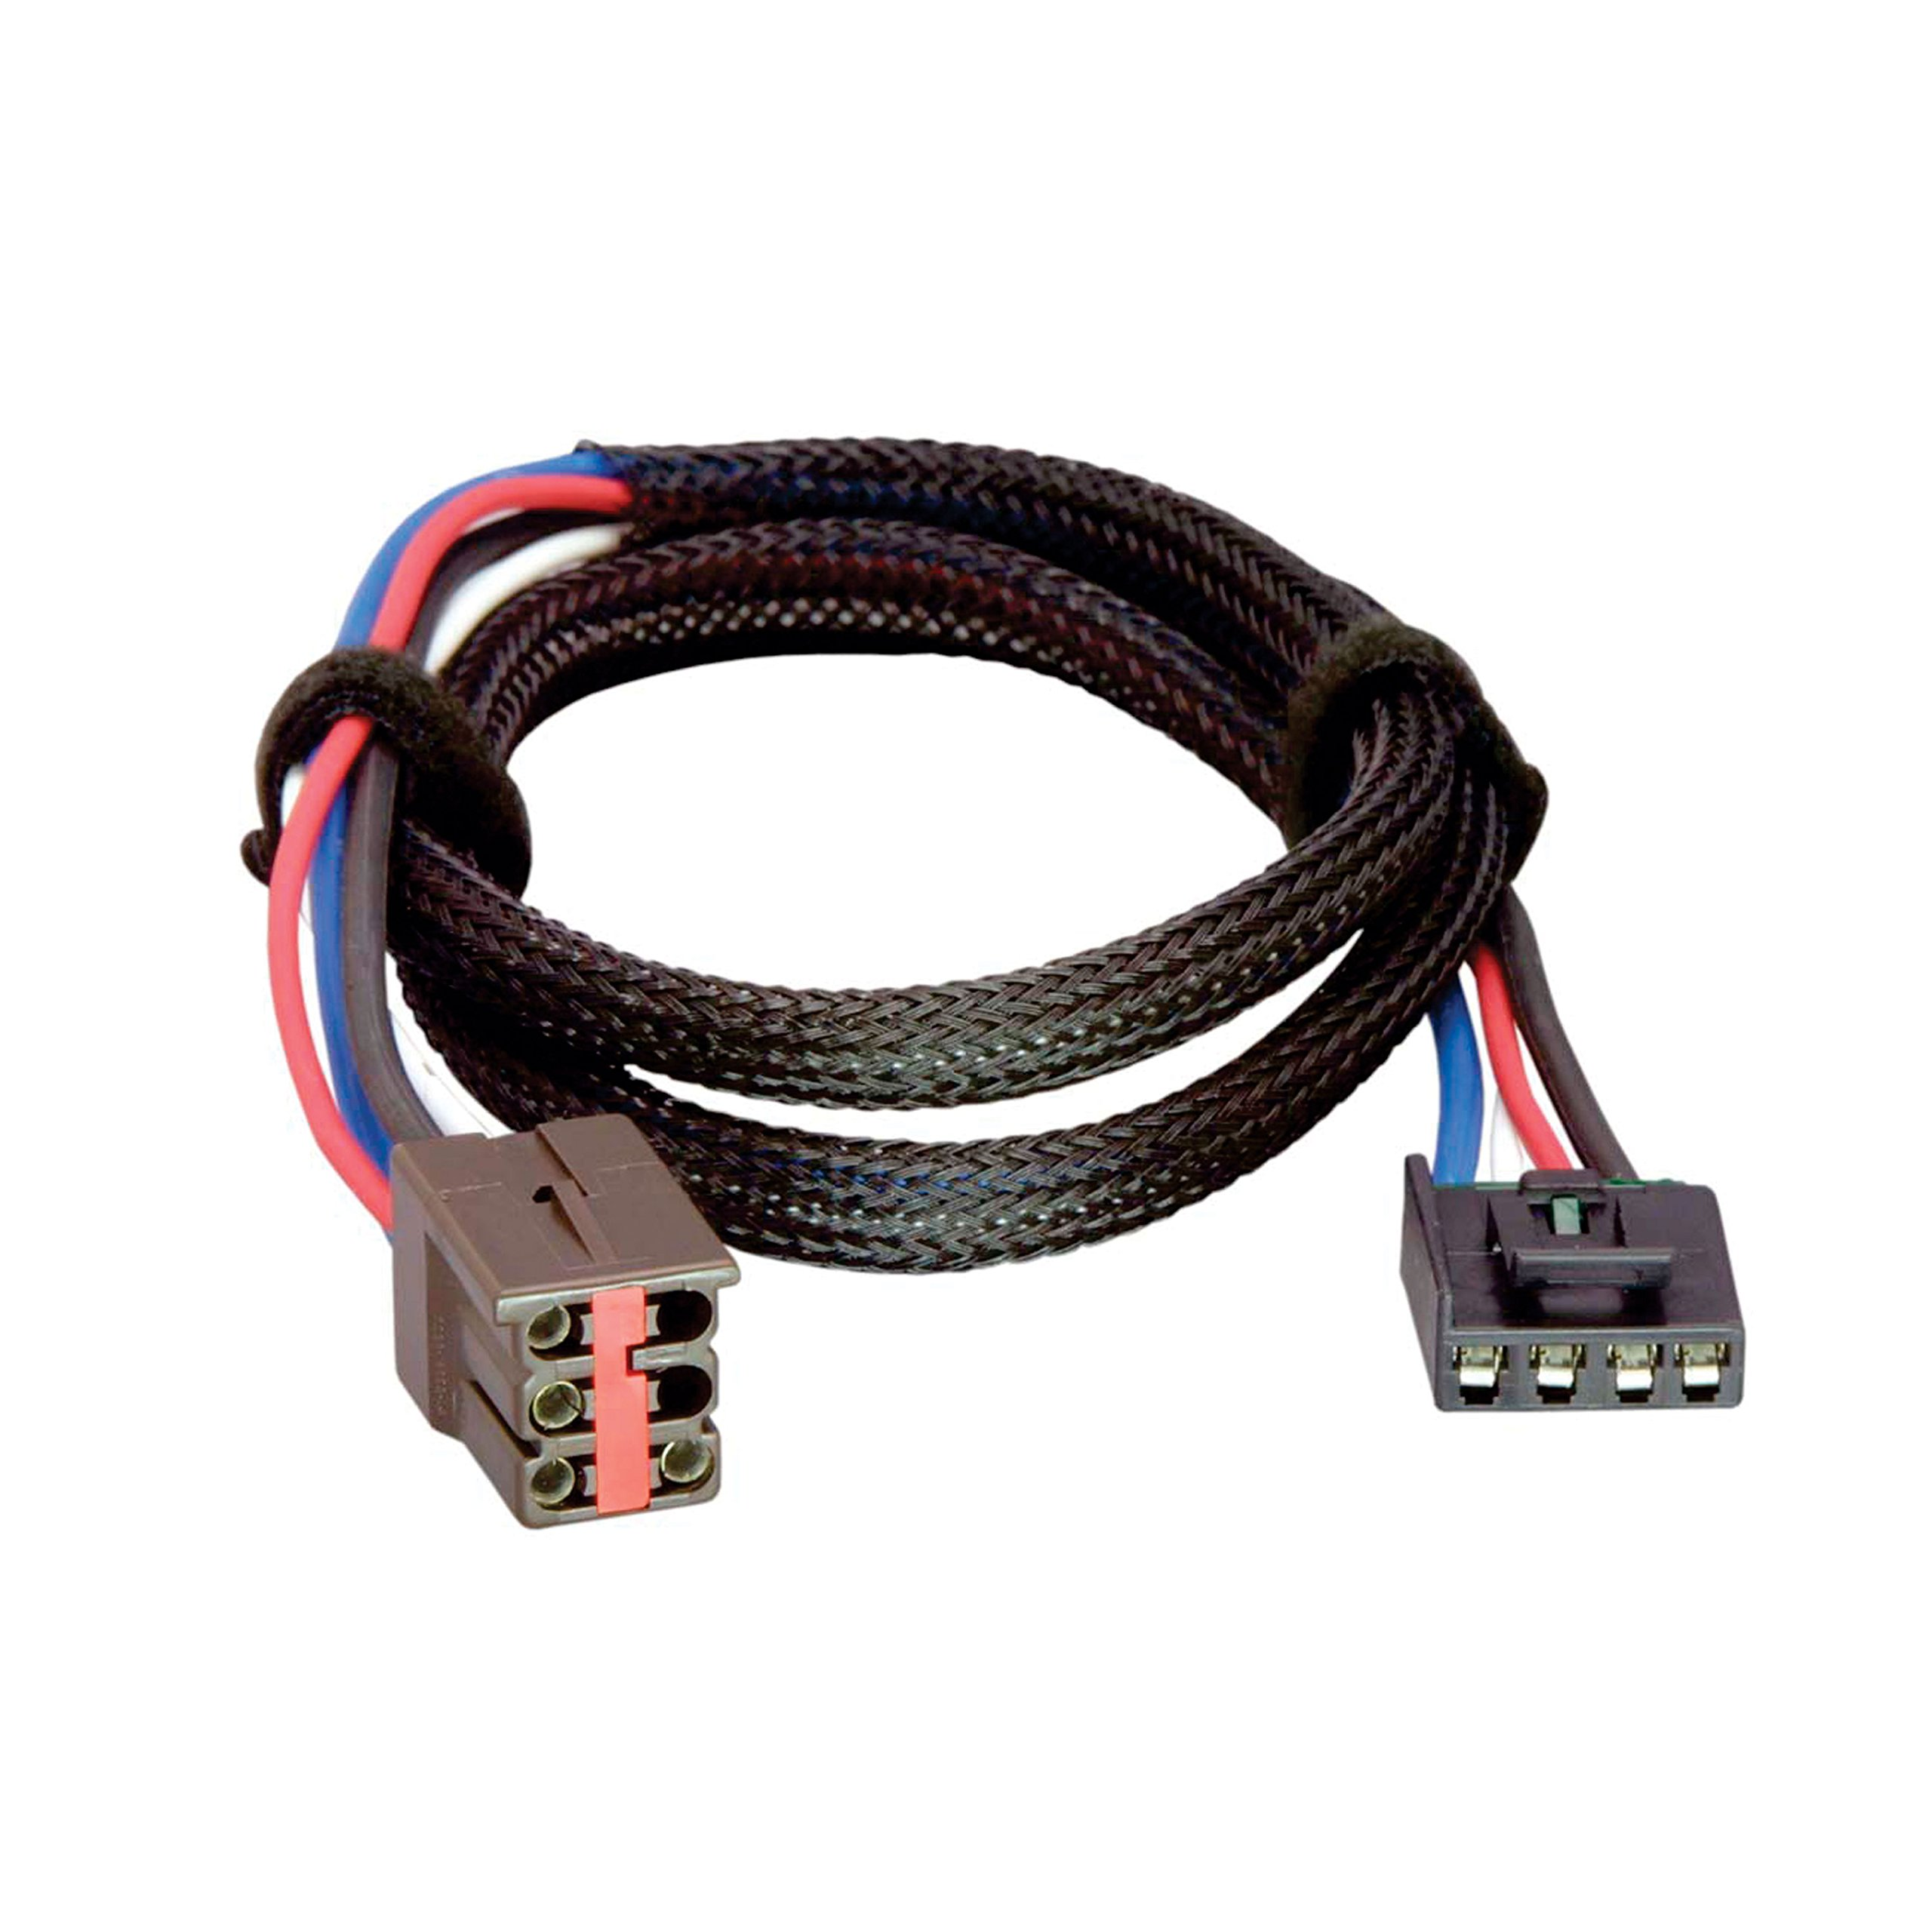 Amazon.com: Tekonsha 3035-P Brake Control Wiring Adapter for Ford:  Automotive